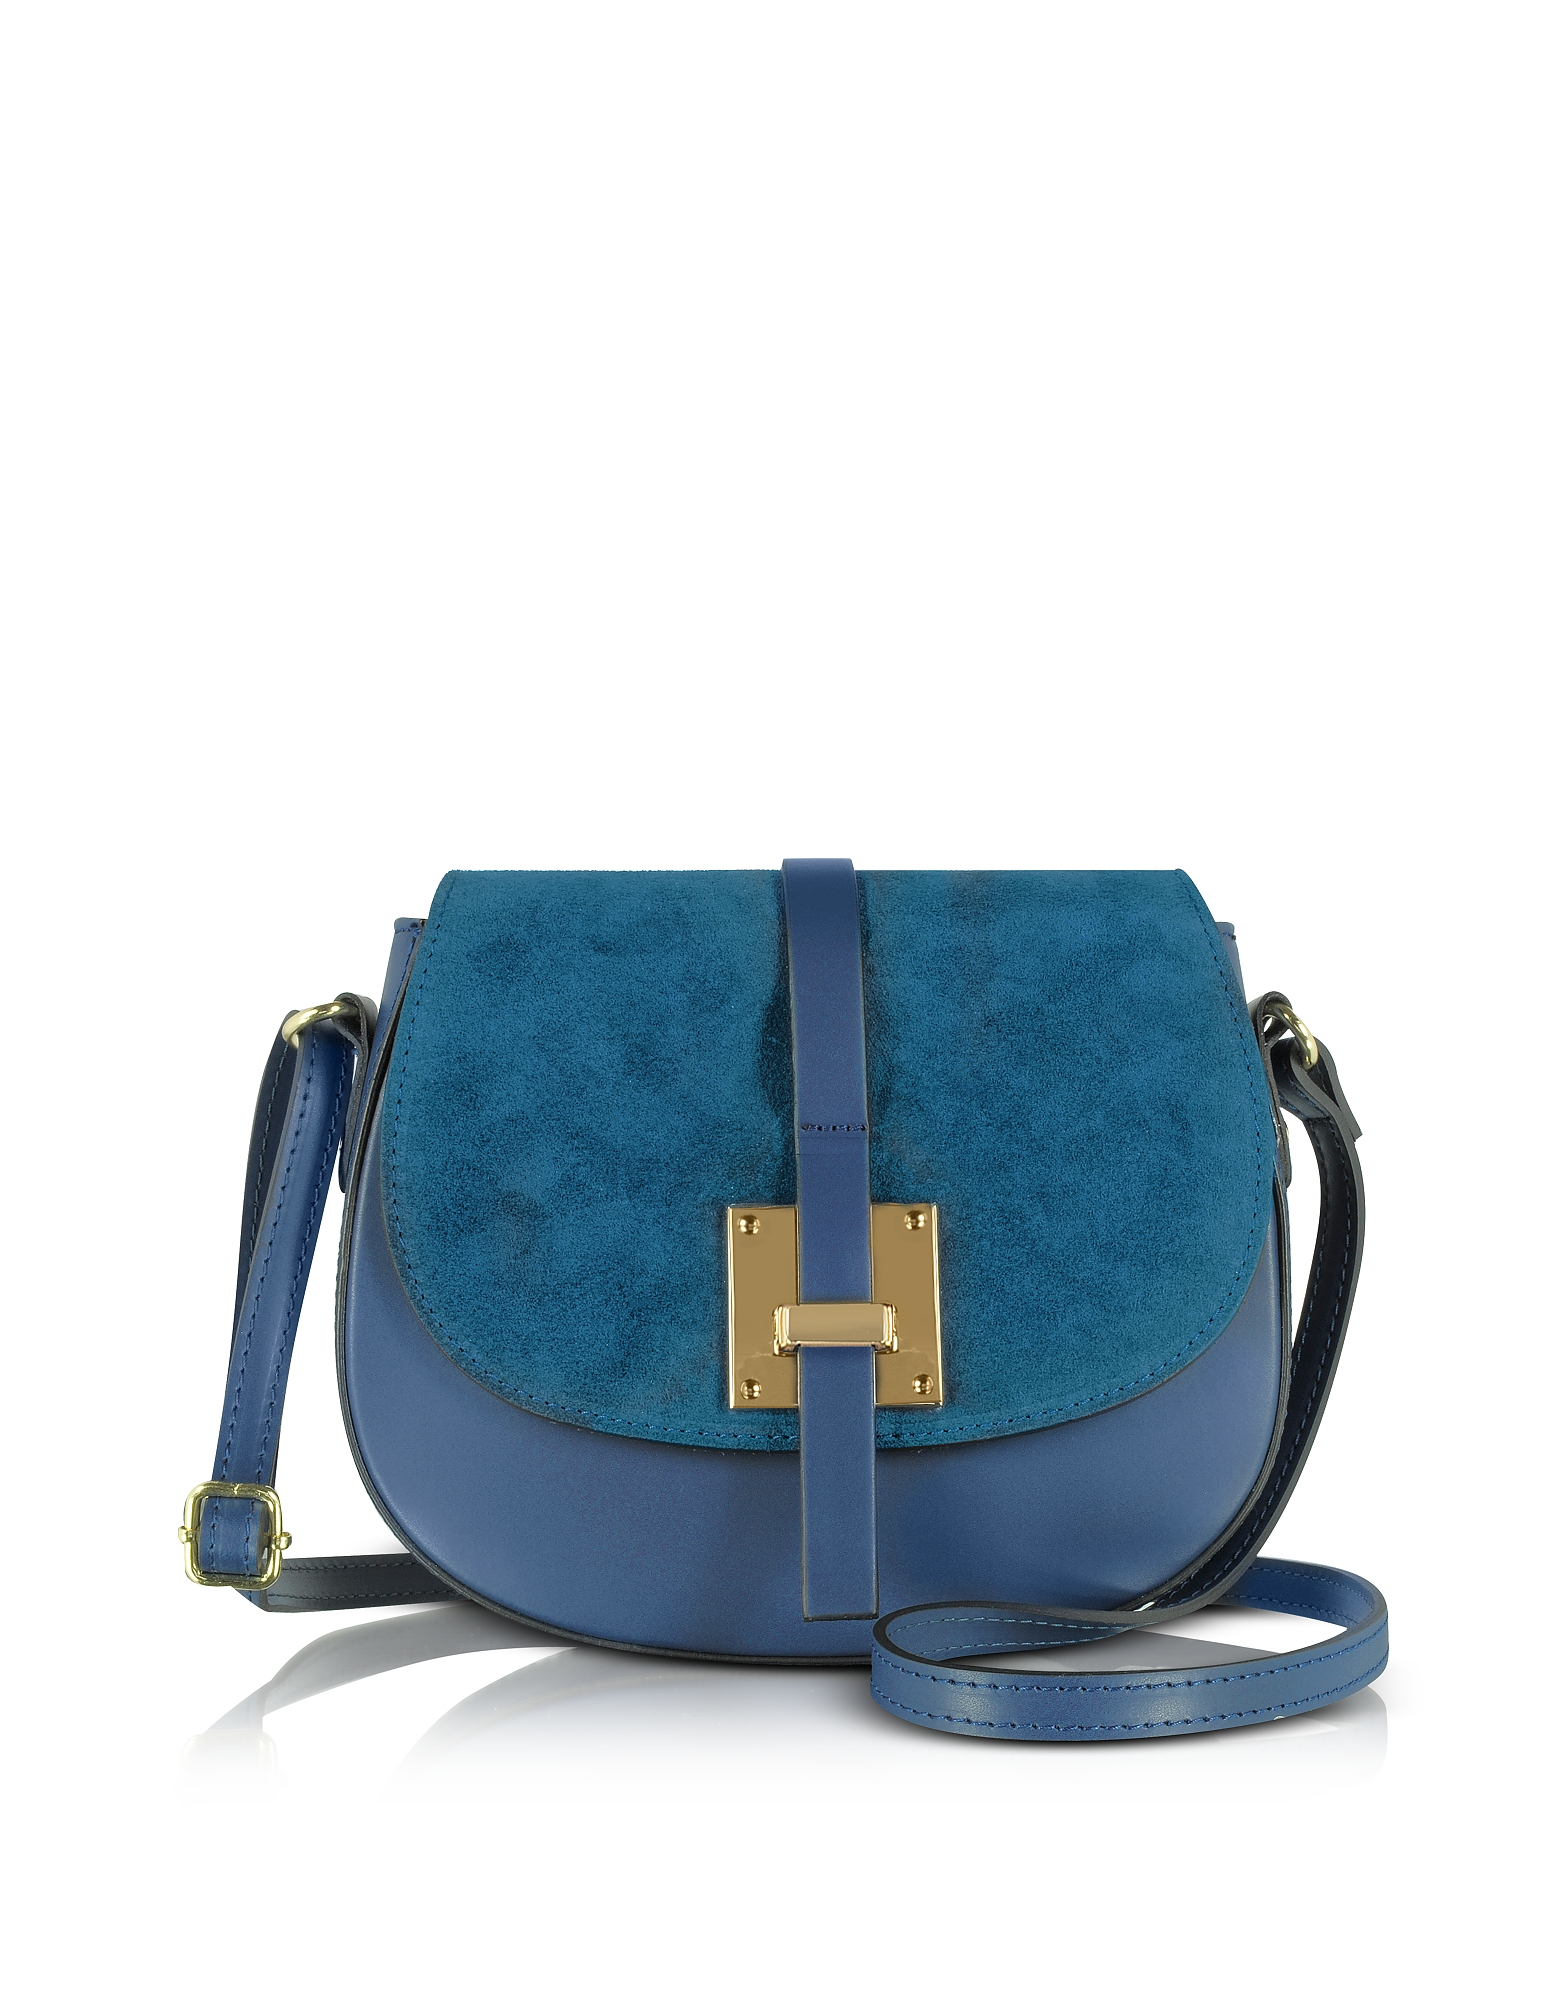 Le Parmentier Handbags, Pollia Midnight Blue Leather and Suede Crossbody Bag